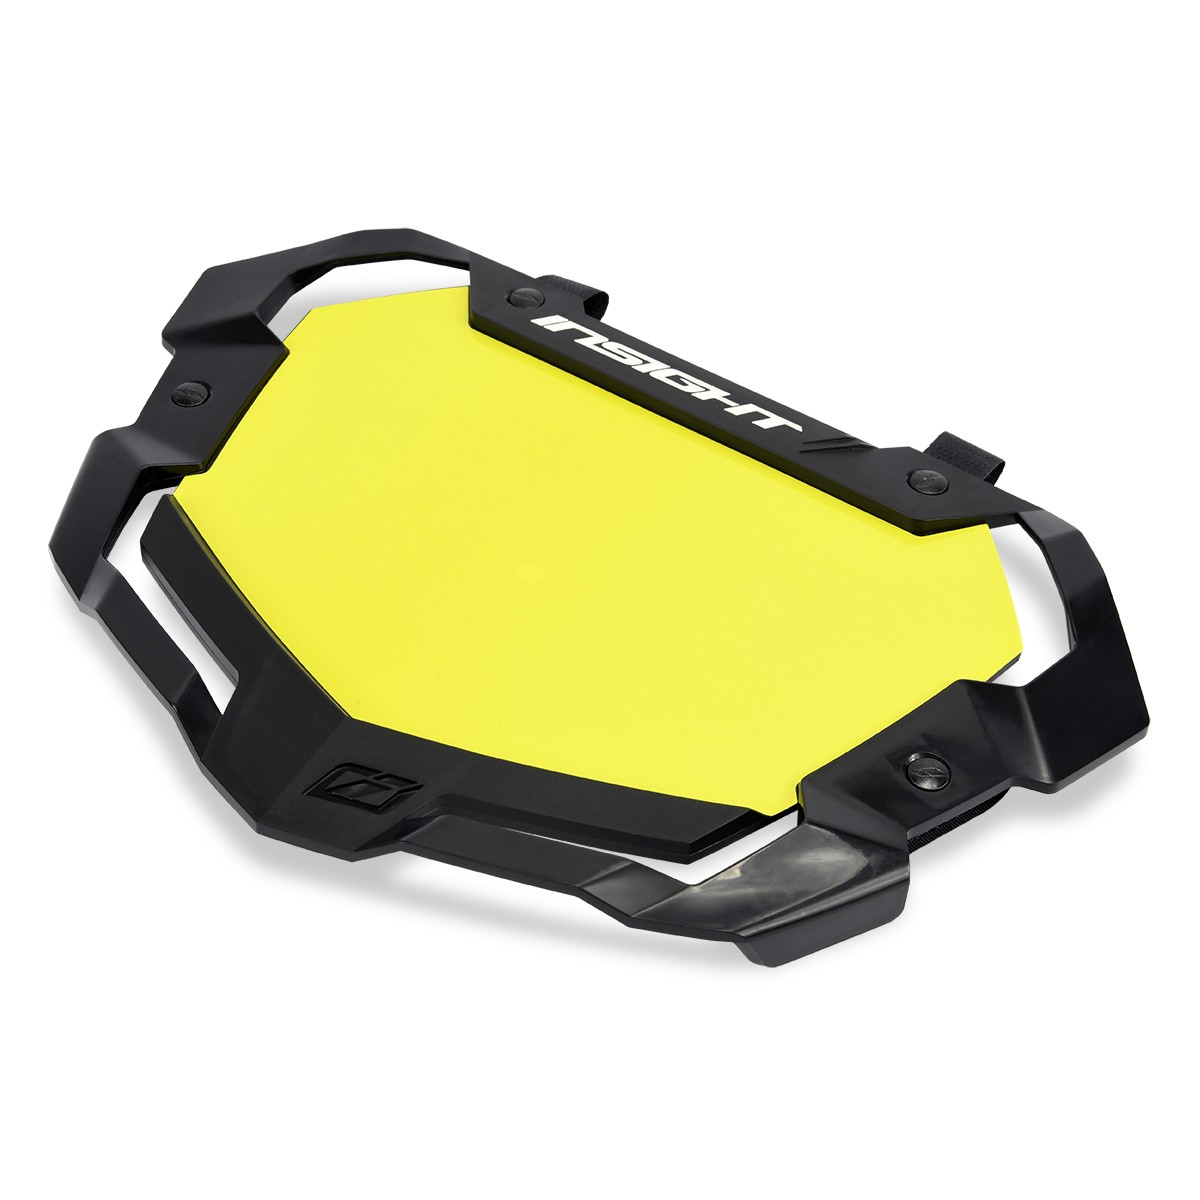 INSIGHT 3D VISION2 NUMBER PRO PLATE YELLOW BACKGROUND